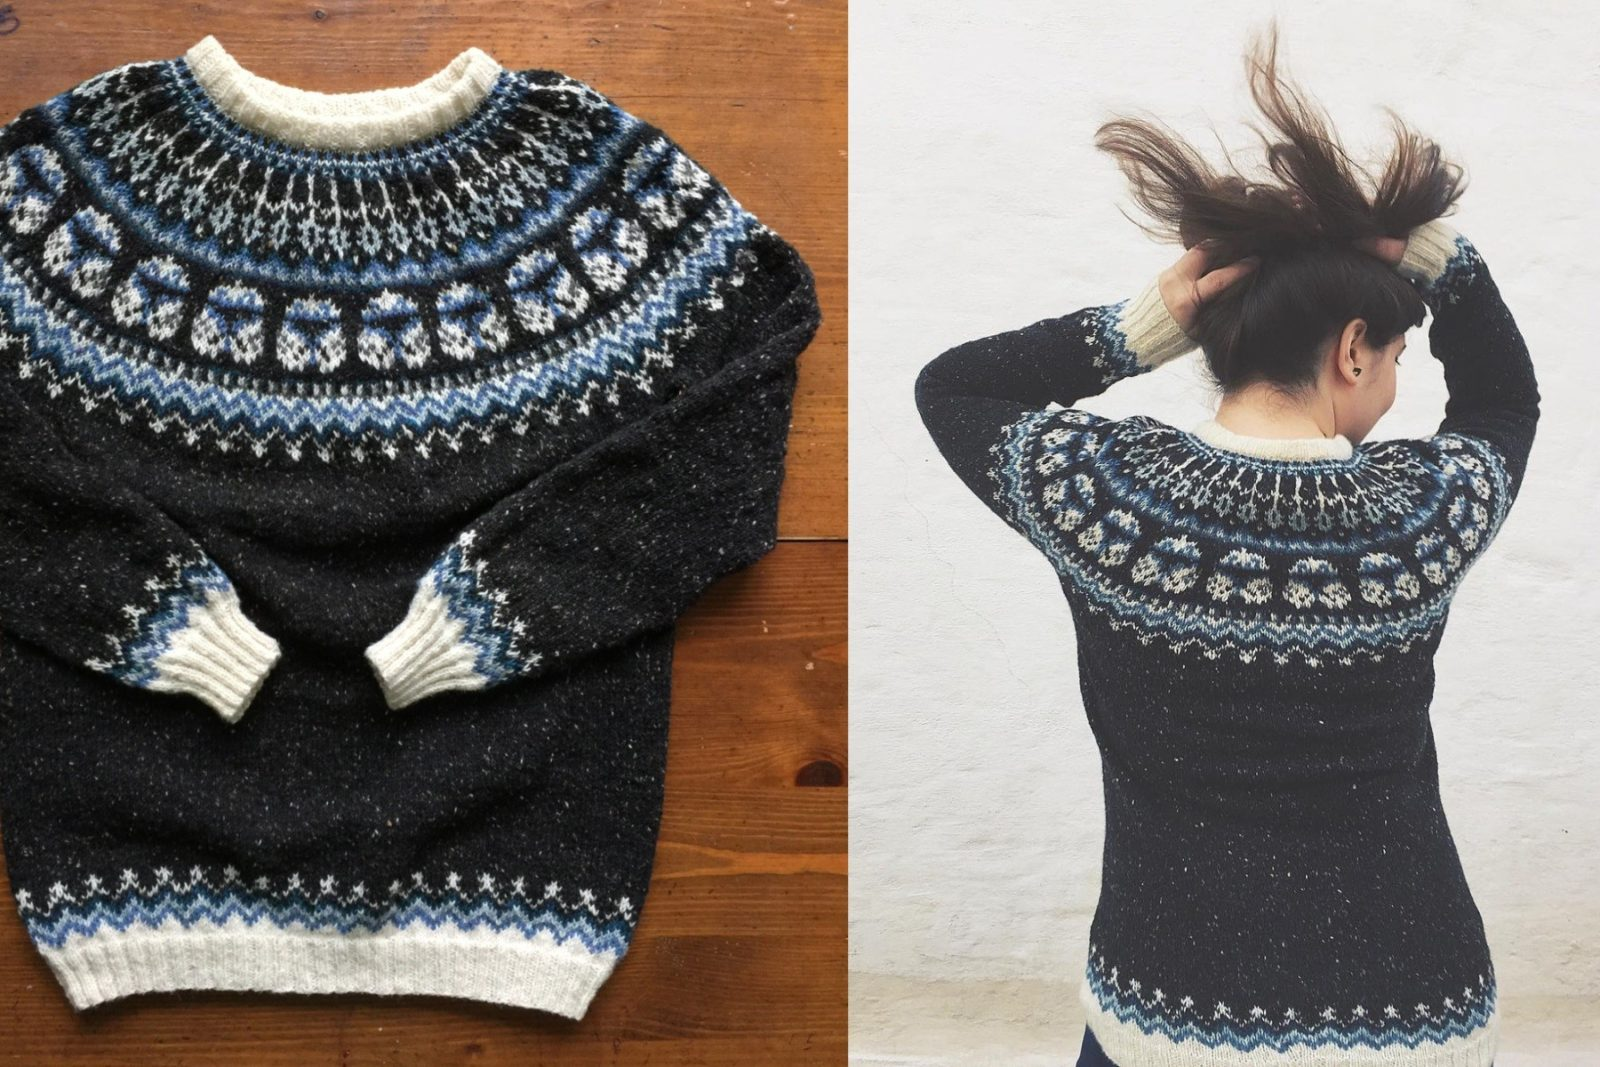 Hand knitted Captain Rex sweater available from Etsy seller Natela Datura Design